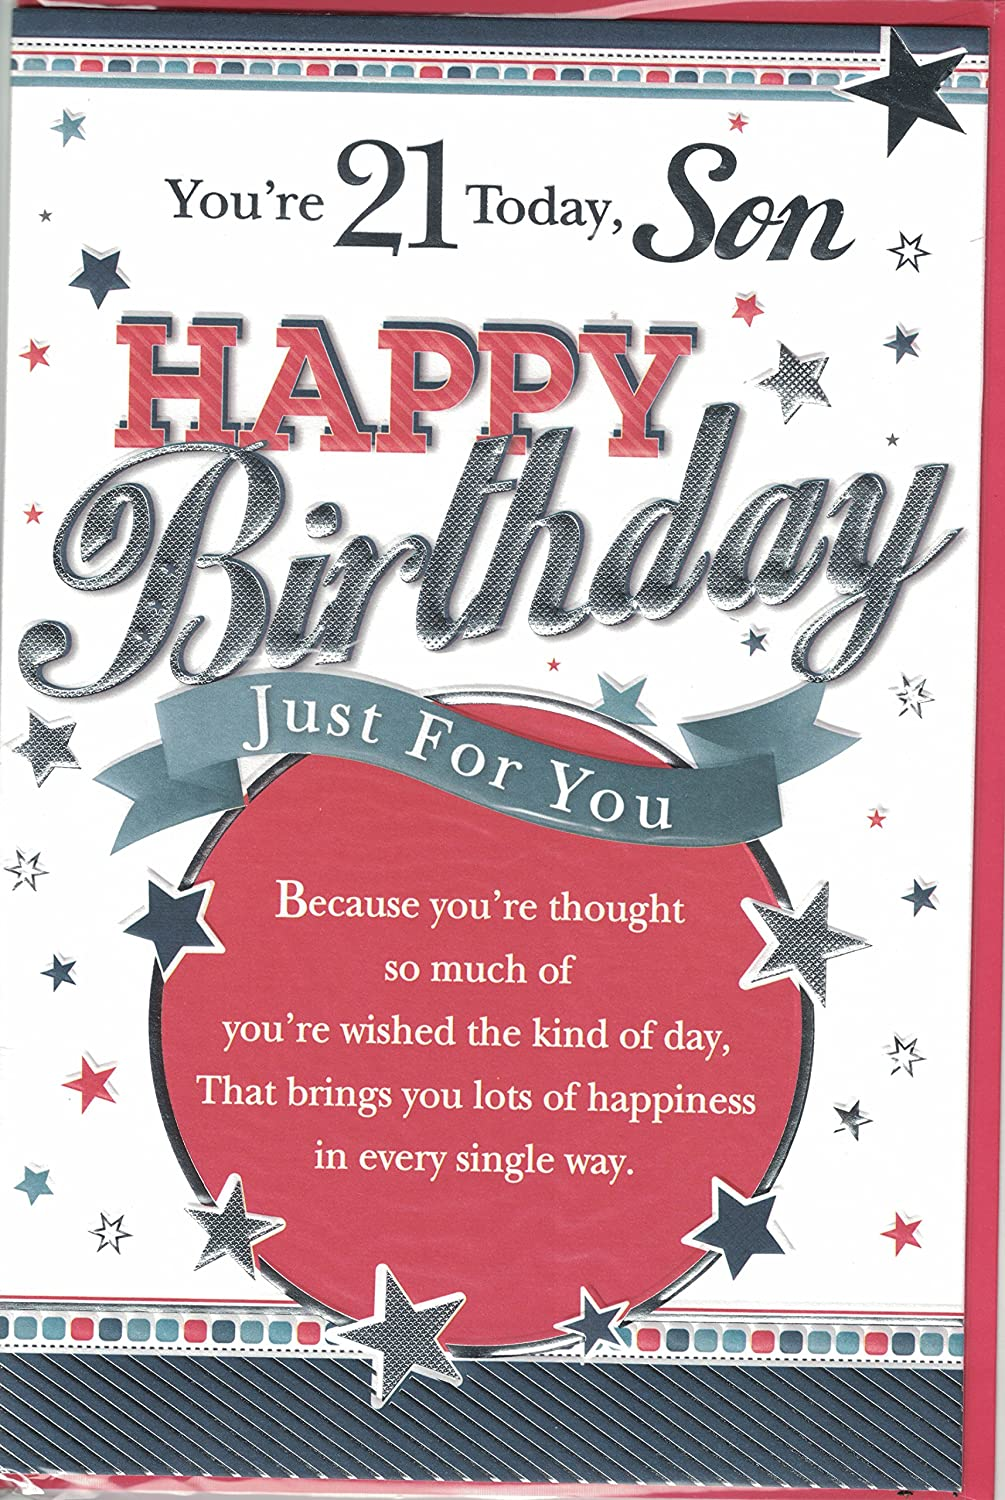 Son 21st birthday card youre 21 son happy birthday modern son 21st birthday card youre 21 son happy birthday modern silver stars design amazon office products bookmarktalkfo Choice Image